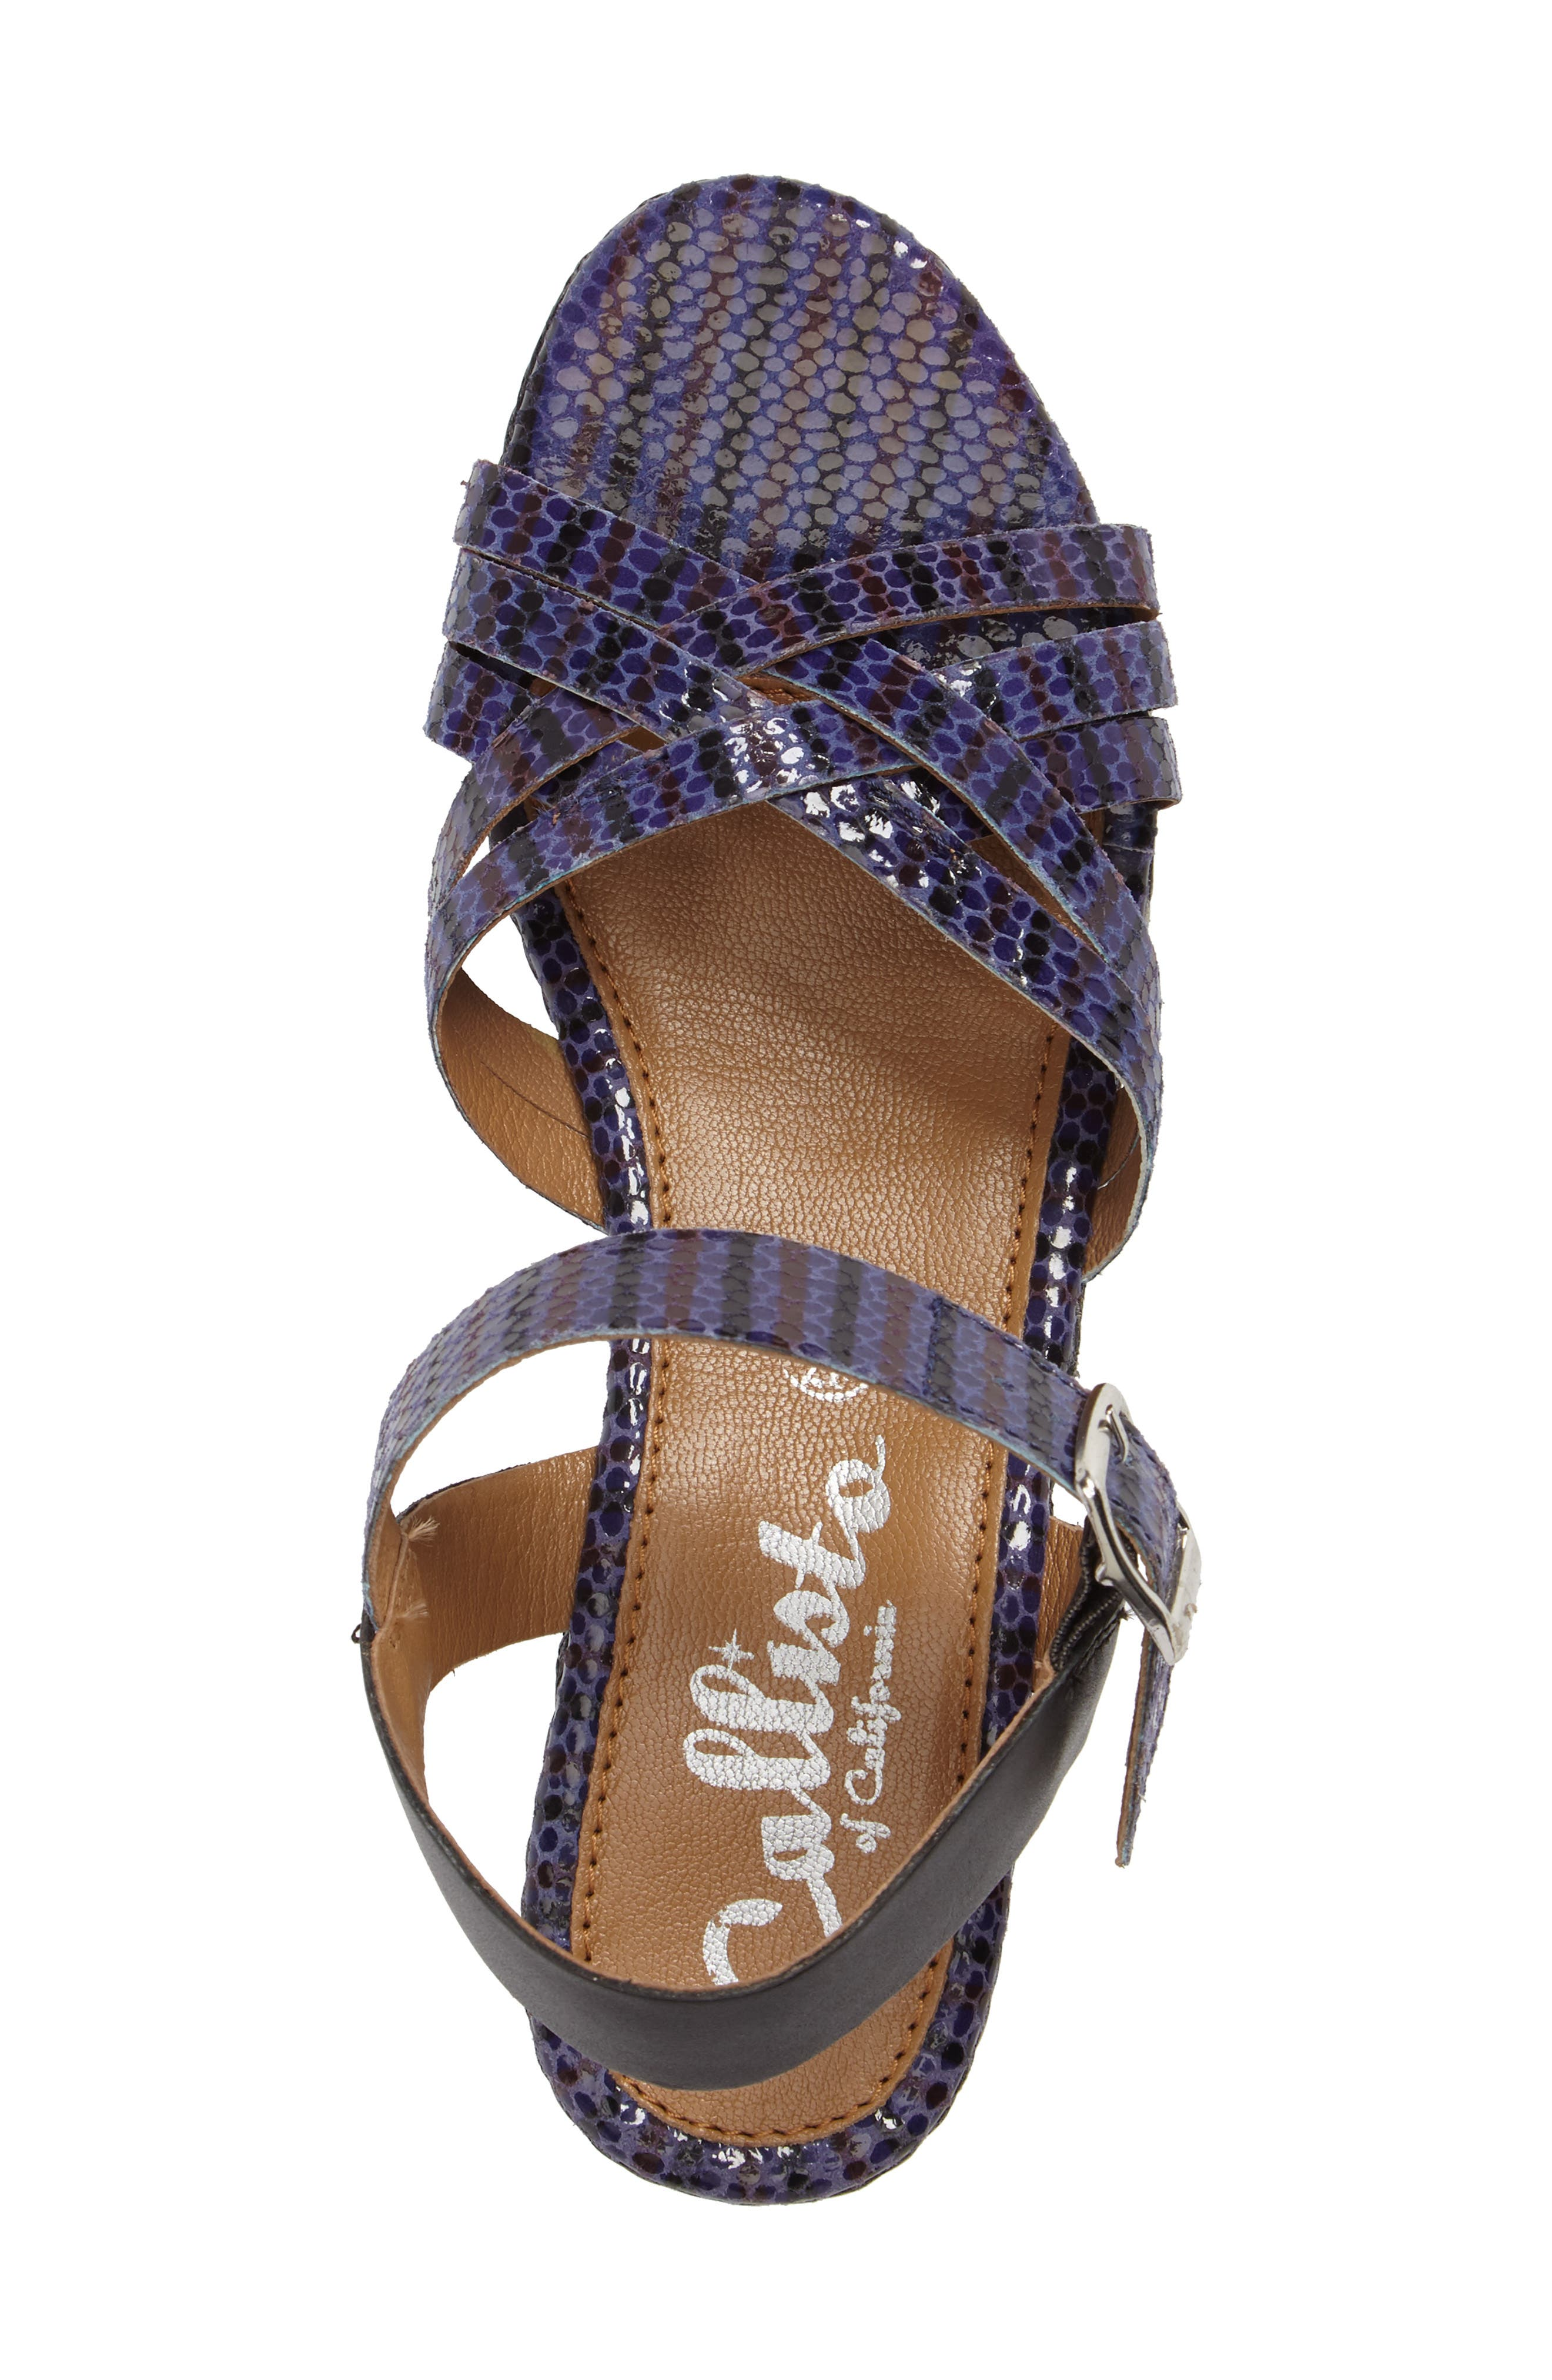 Valencia Platform Wedge Sandal,                             Alternate thumbnail 4, color,                             429